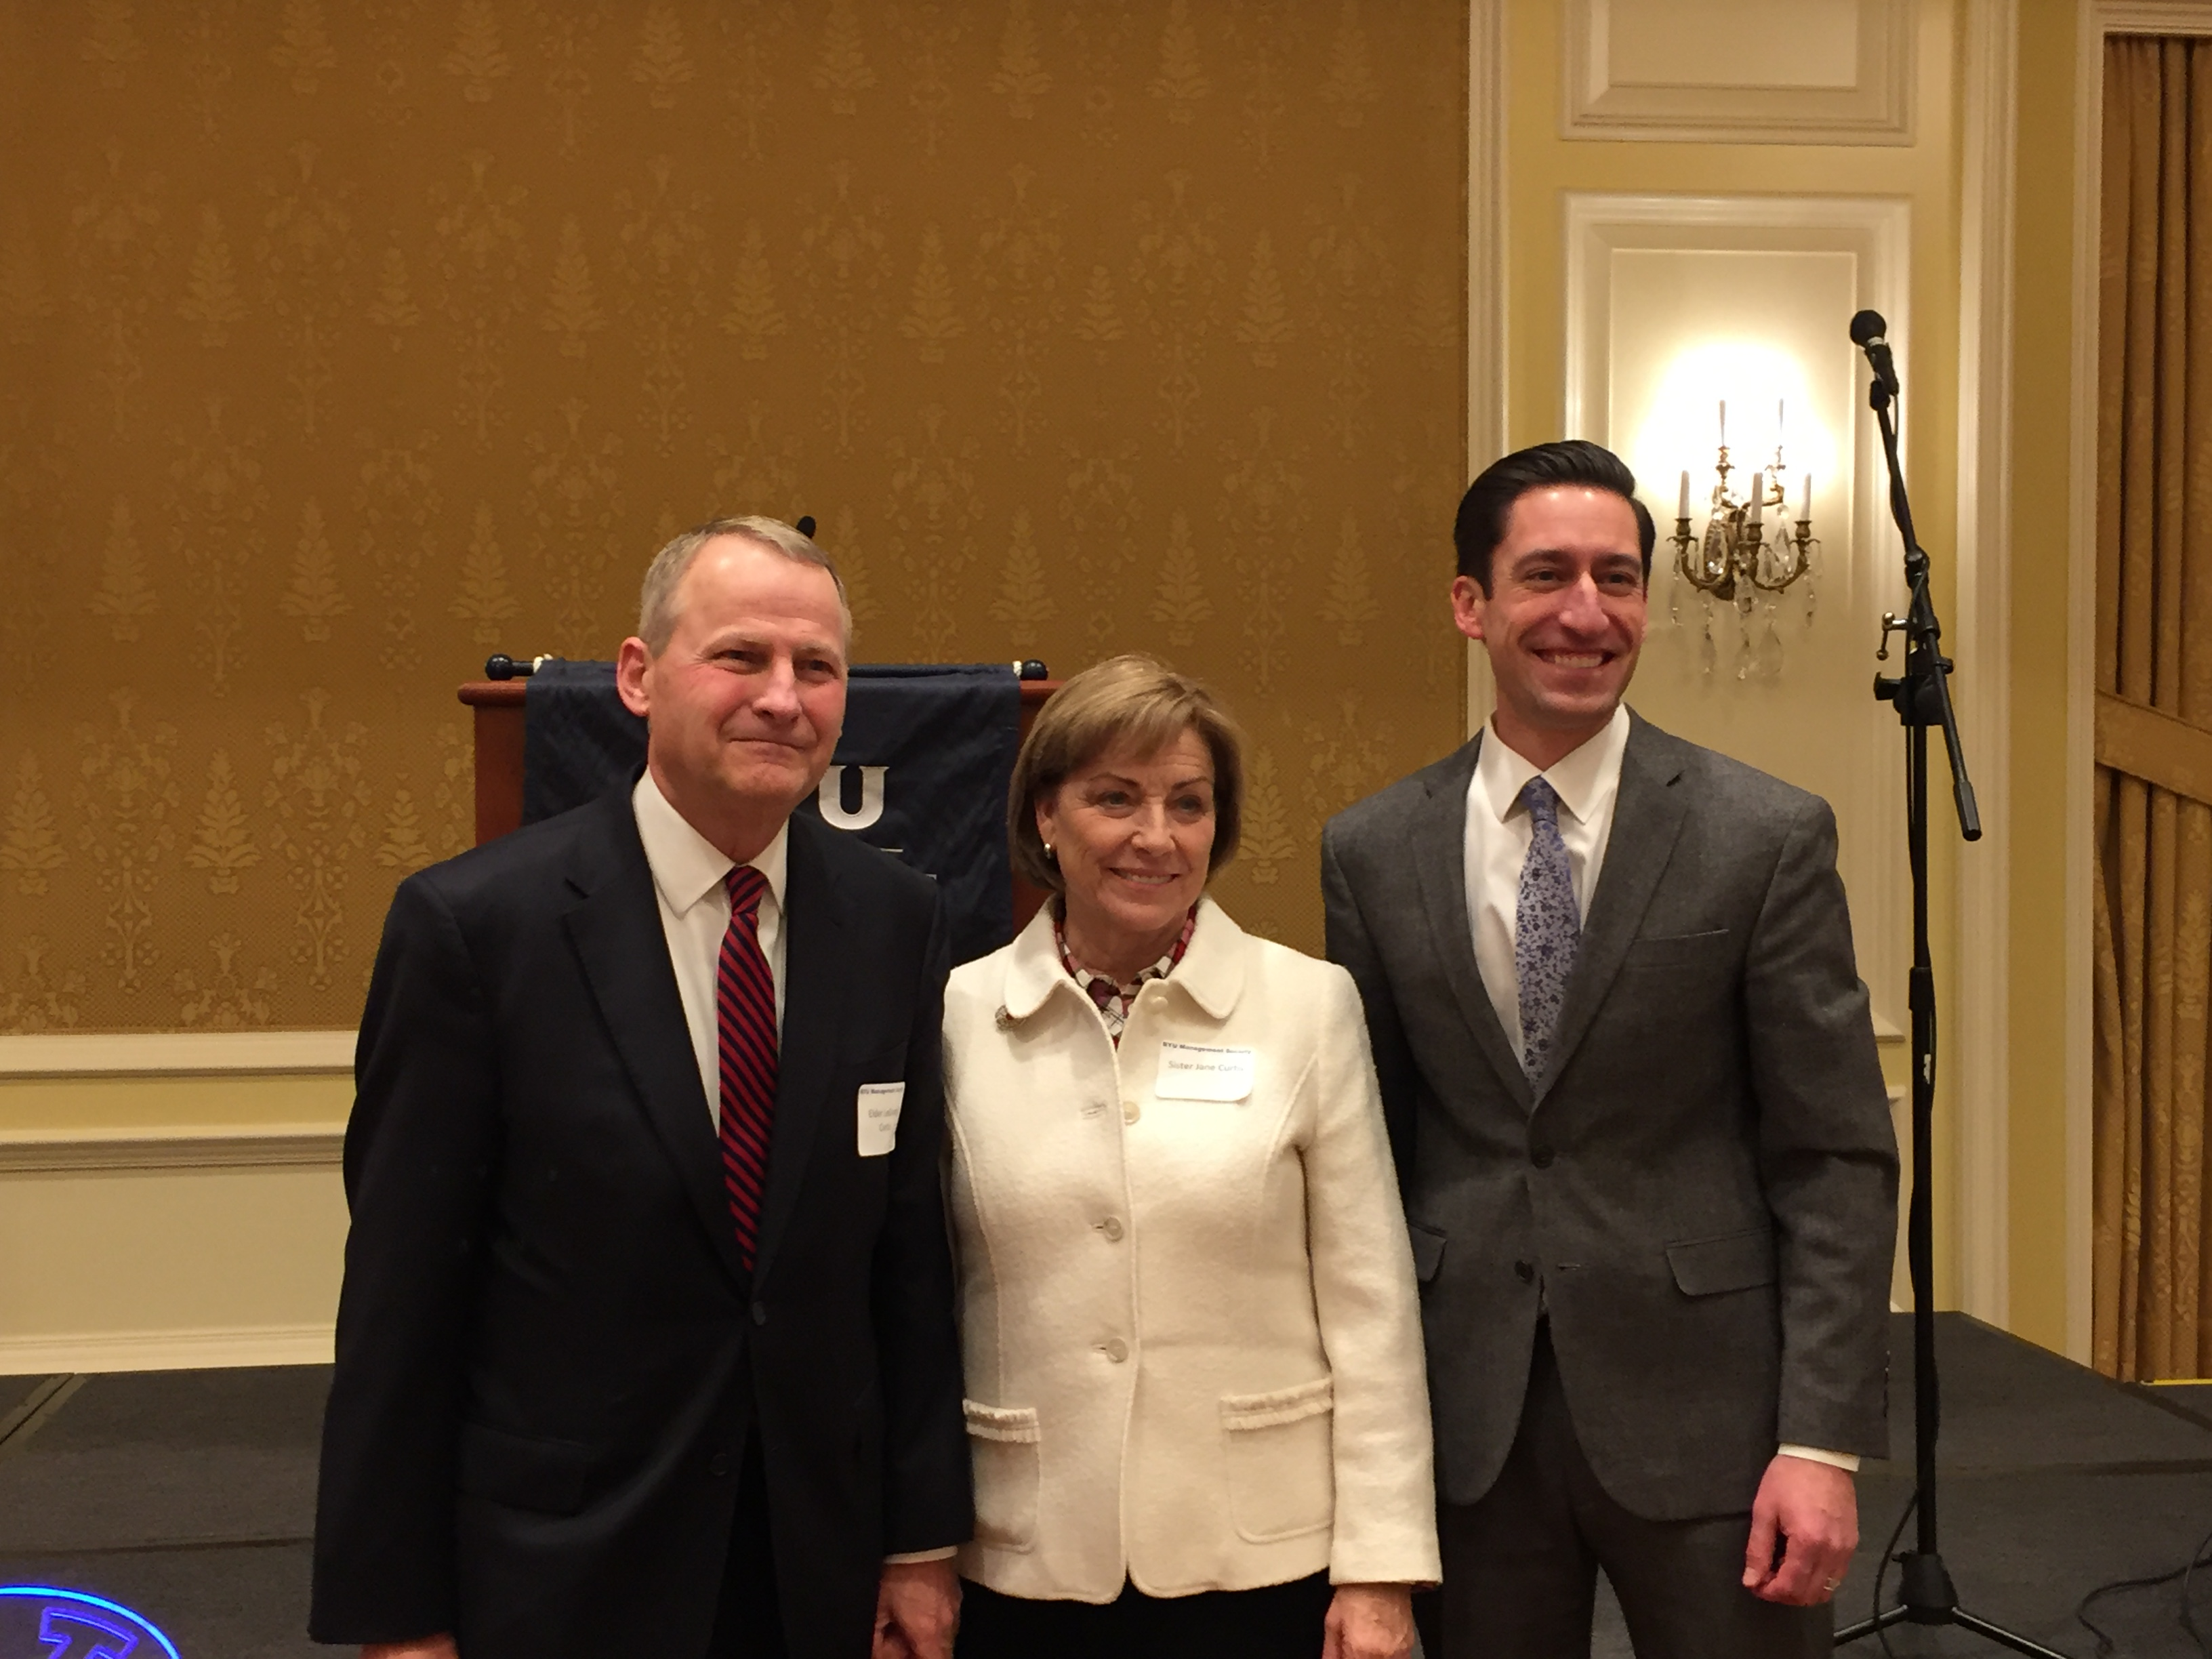 Left to right: Elder LeGrand R. Curtis, Sister Jane Curtis, and Matthew Sadowski, chapter president, after the BYU Management Society Devotional at the Little America Hotel on Dec. 11 in Salt Lake.